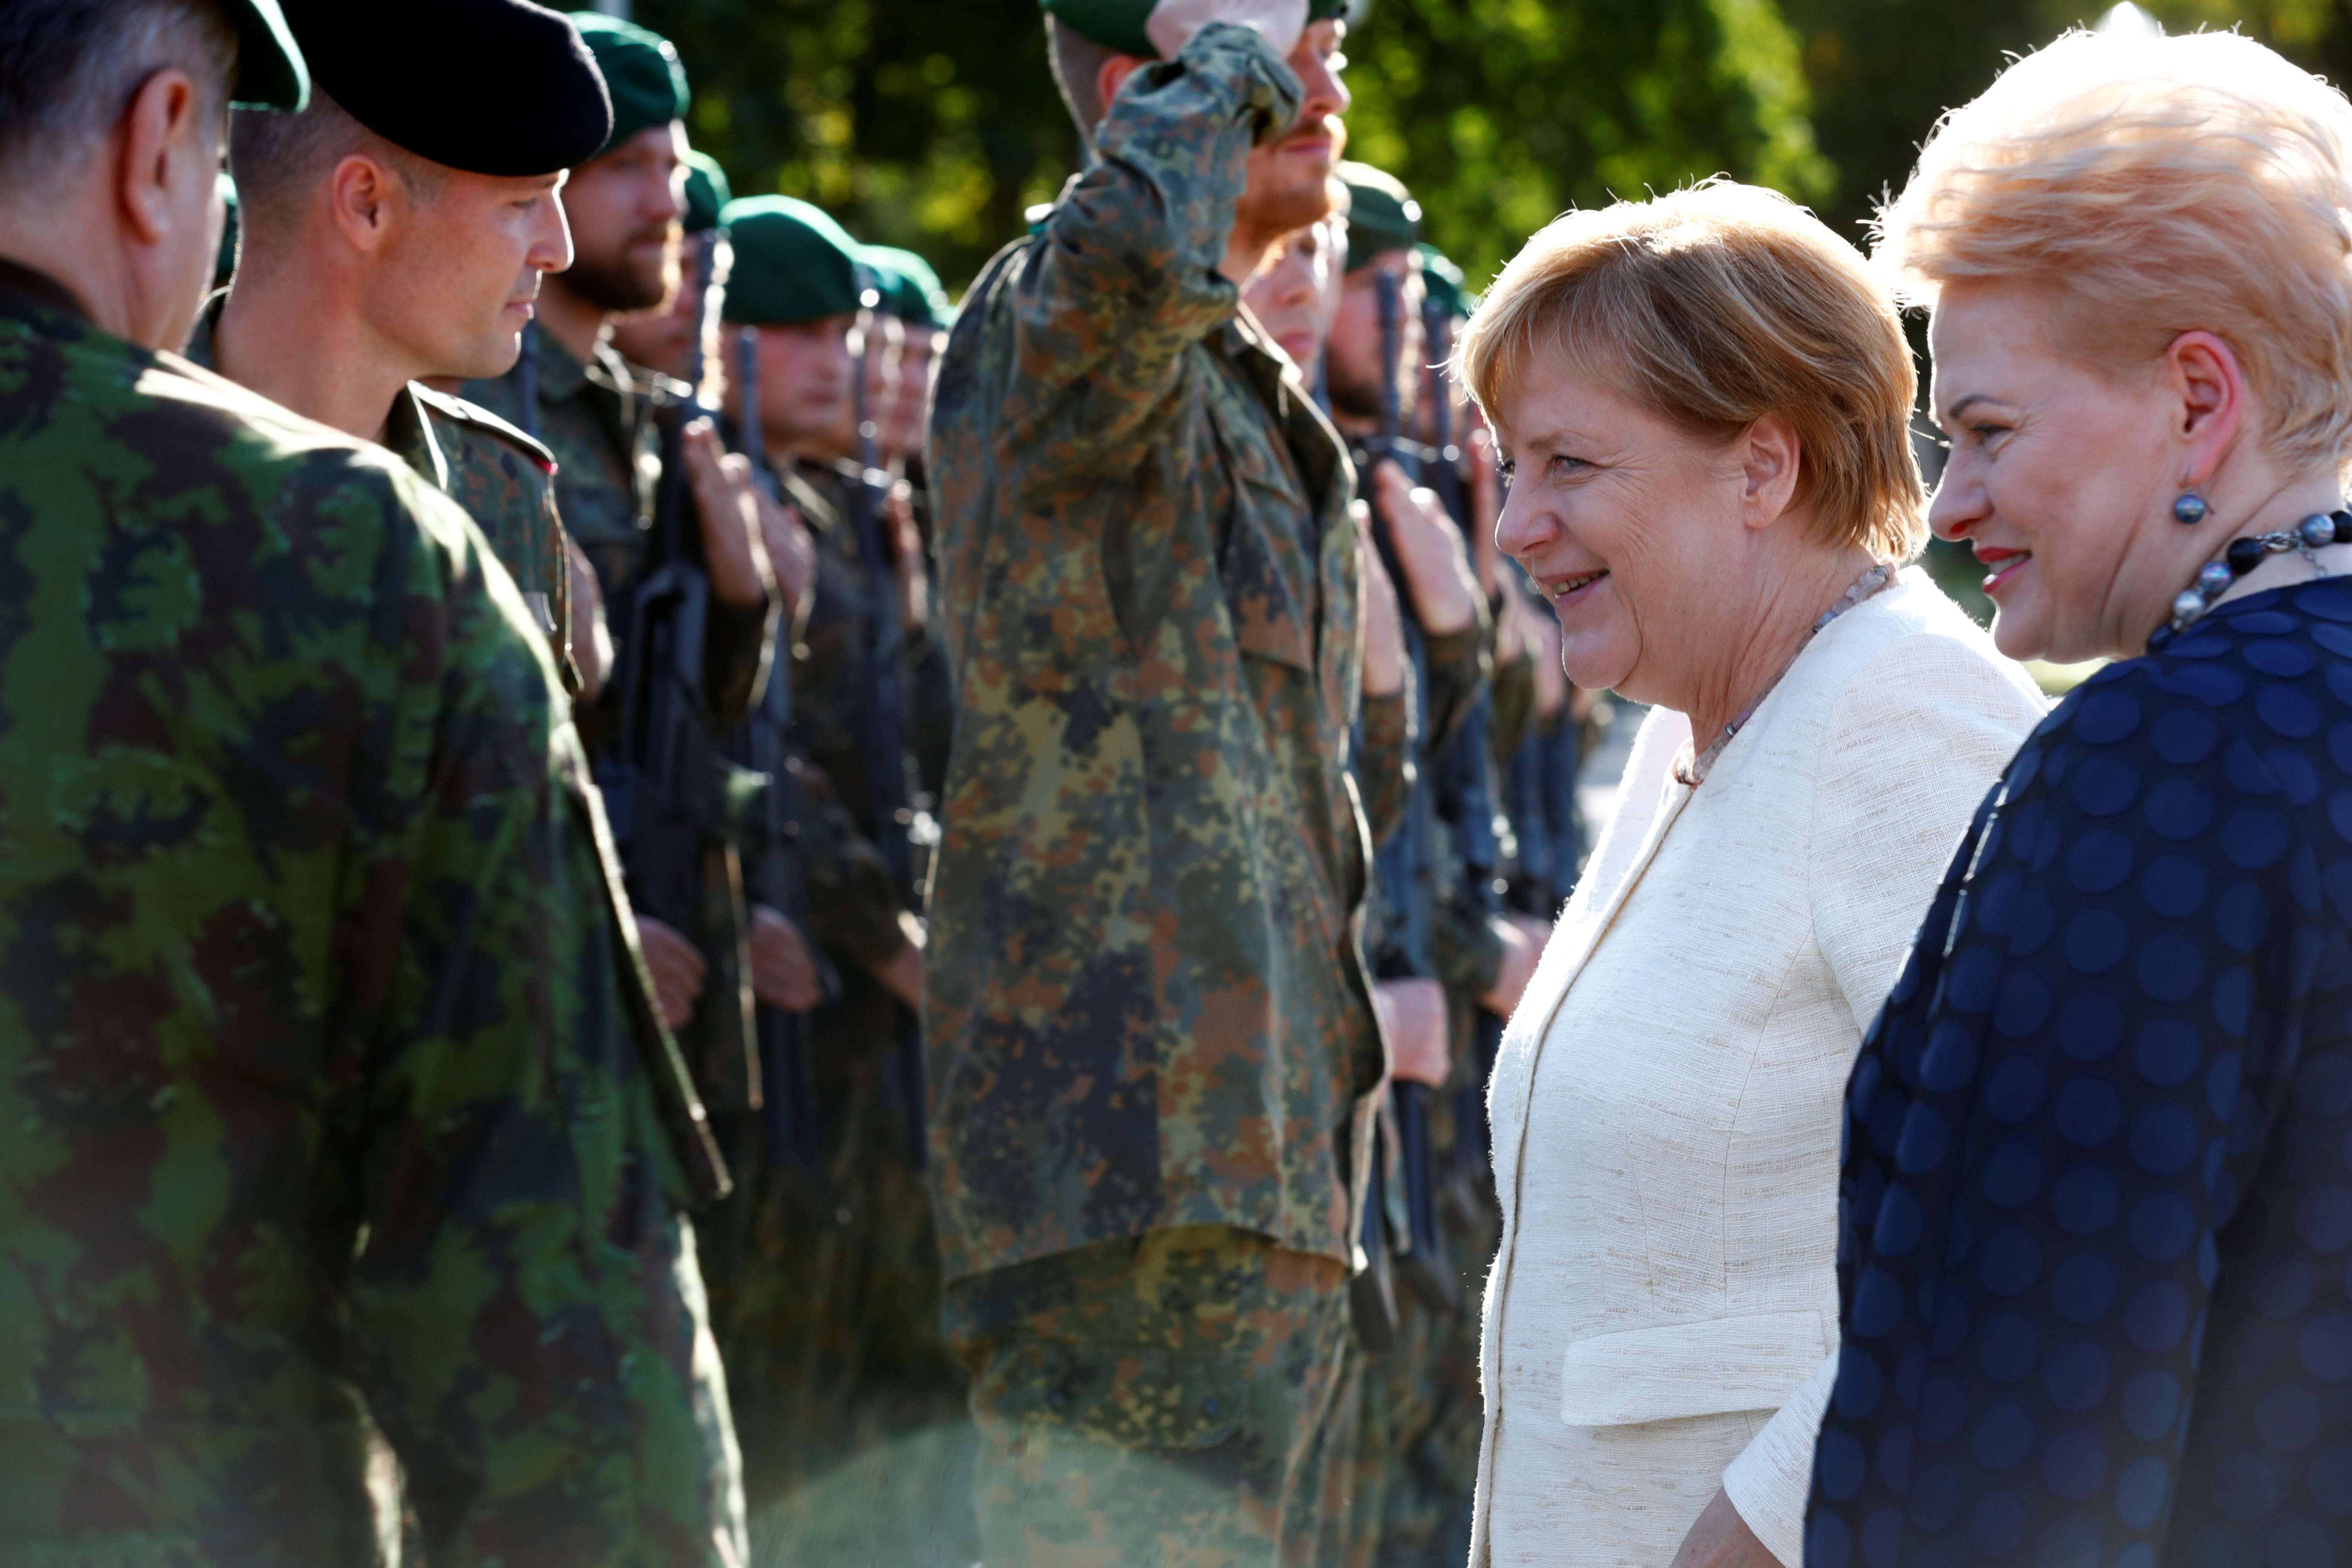 German Chancellor Angela Merkel and then-Lithuanian President Dalia Grybauskaitė visit German NATO troops deployed in Lithuania. (Ints Kalnins/Reuters)